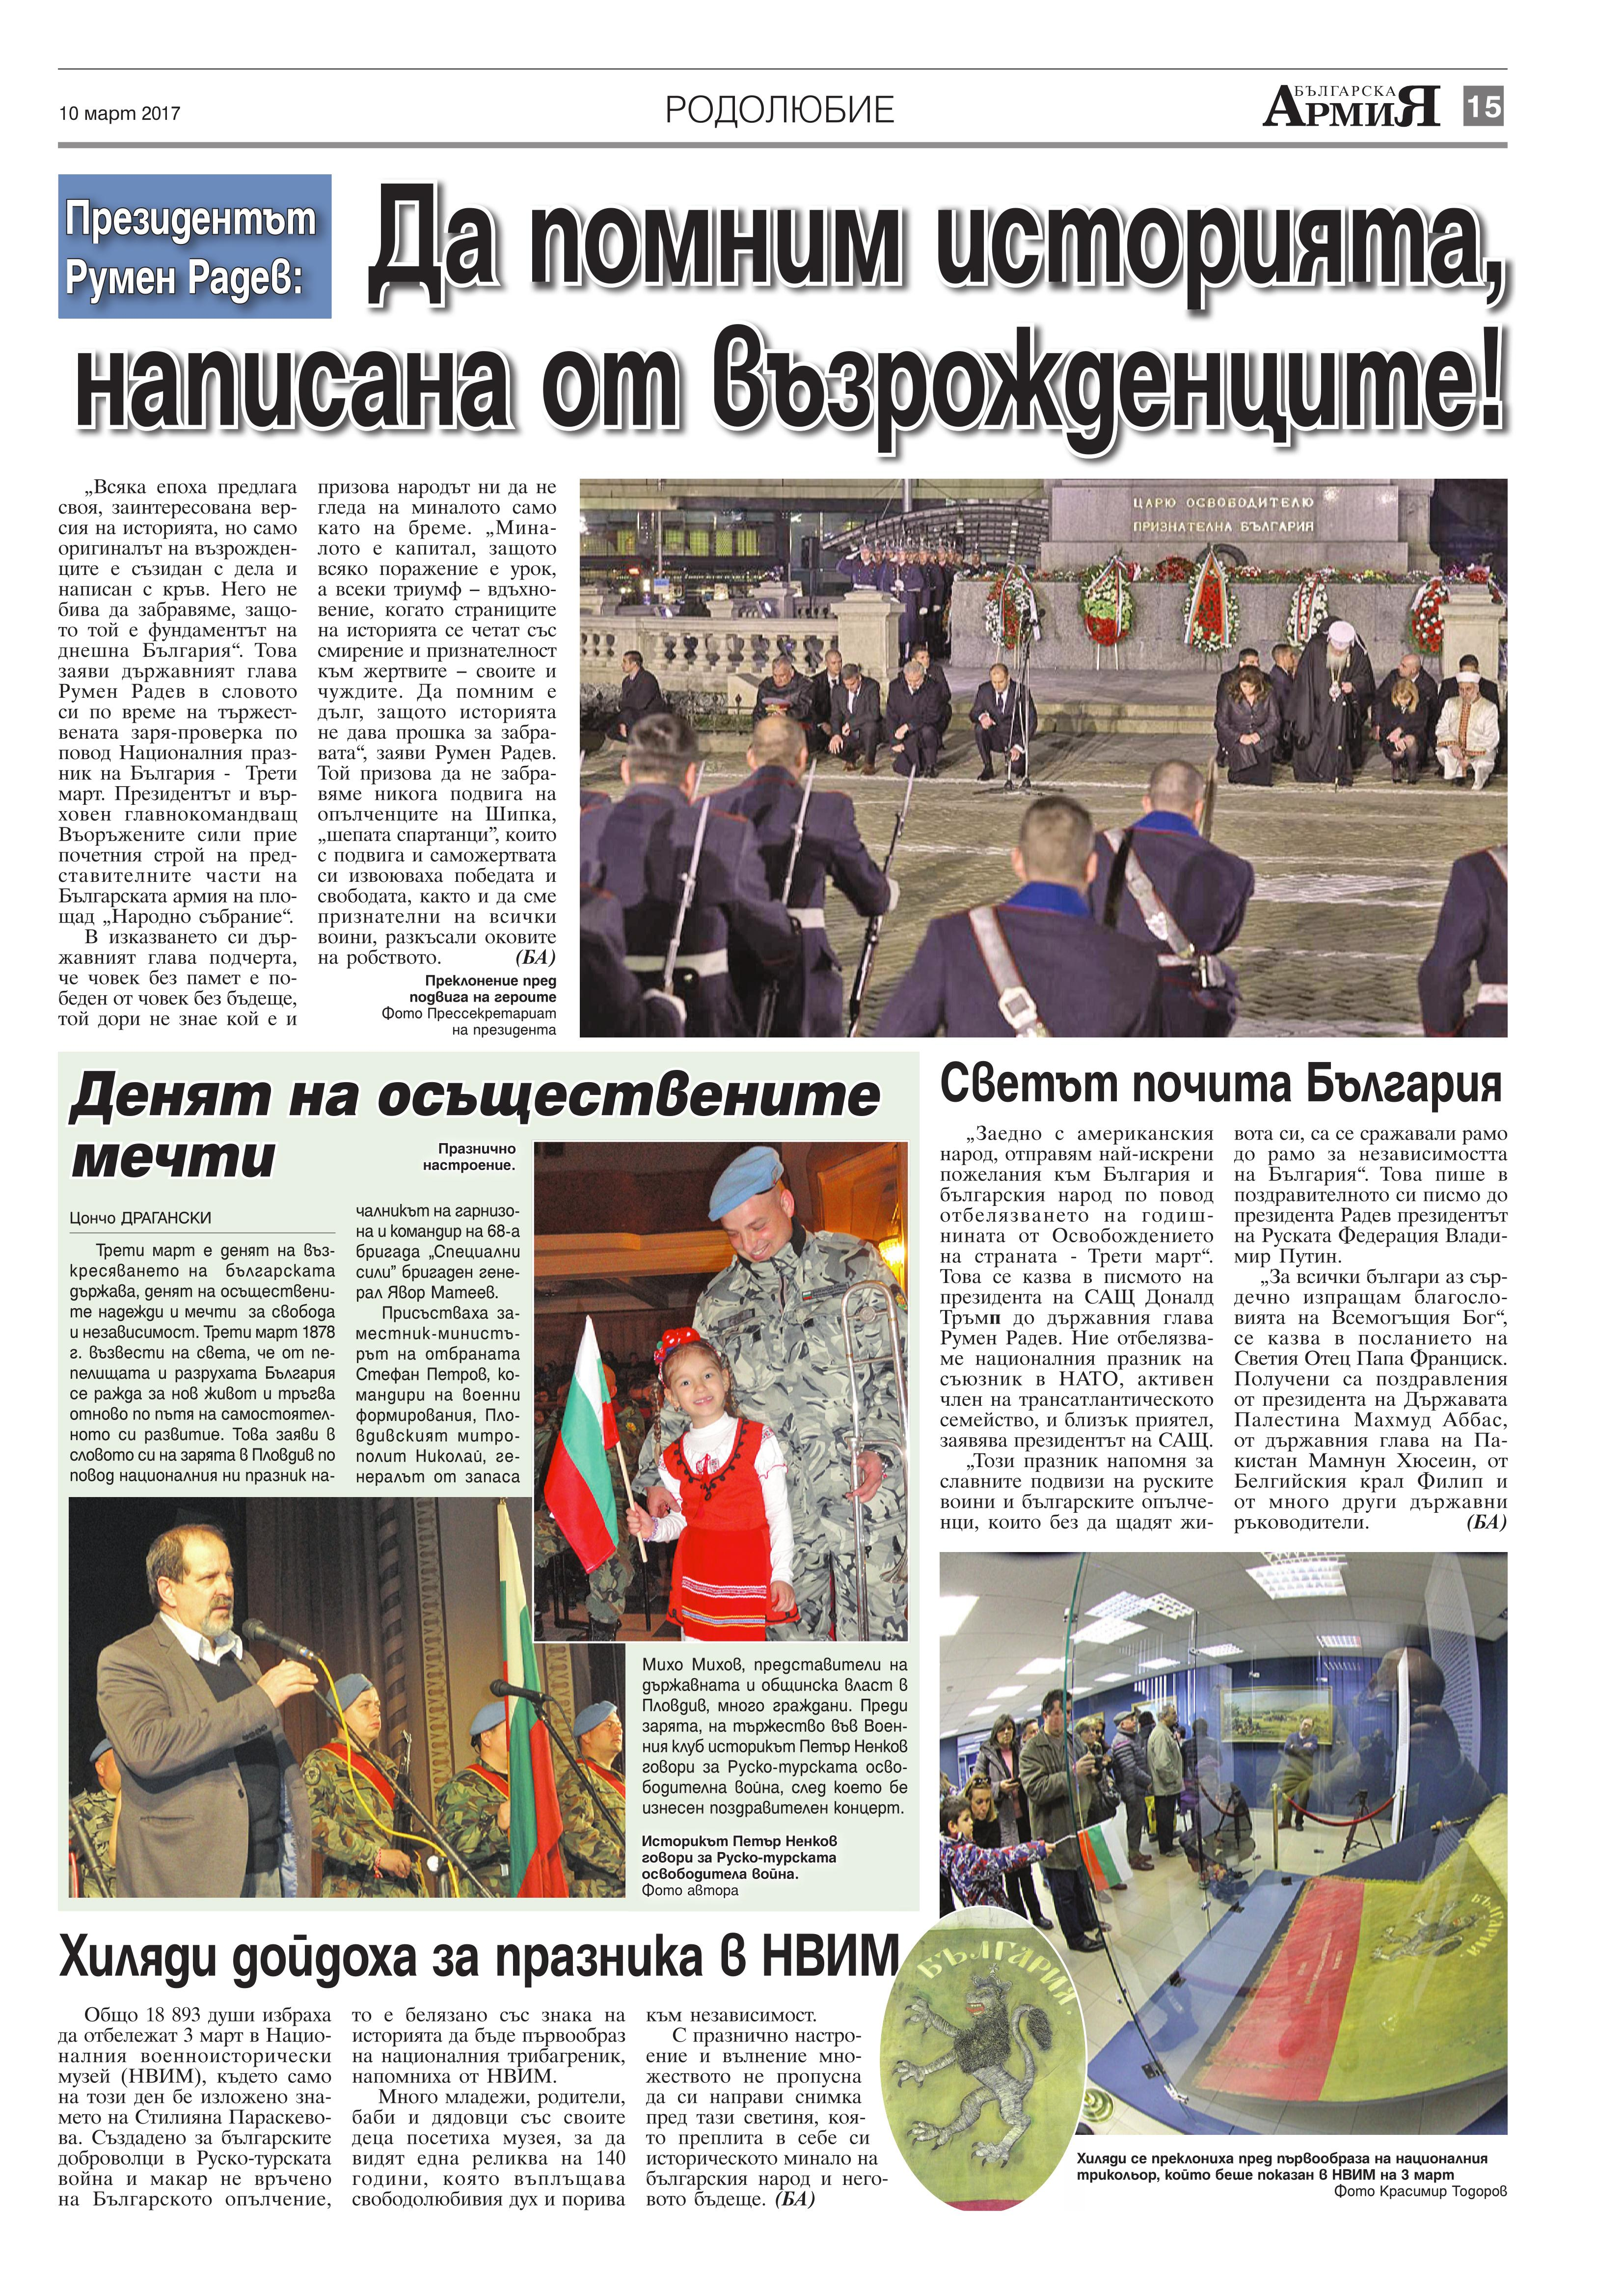 https://www.armymedia.bg/wp-content/uploads/2015/06/15.page1_-16.jpg